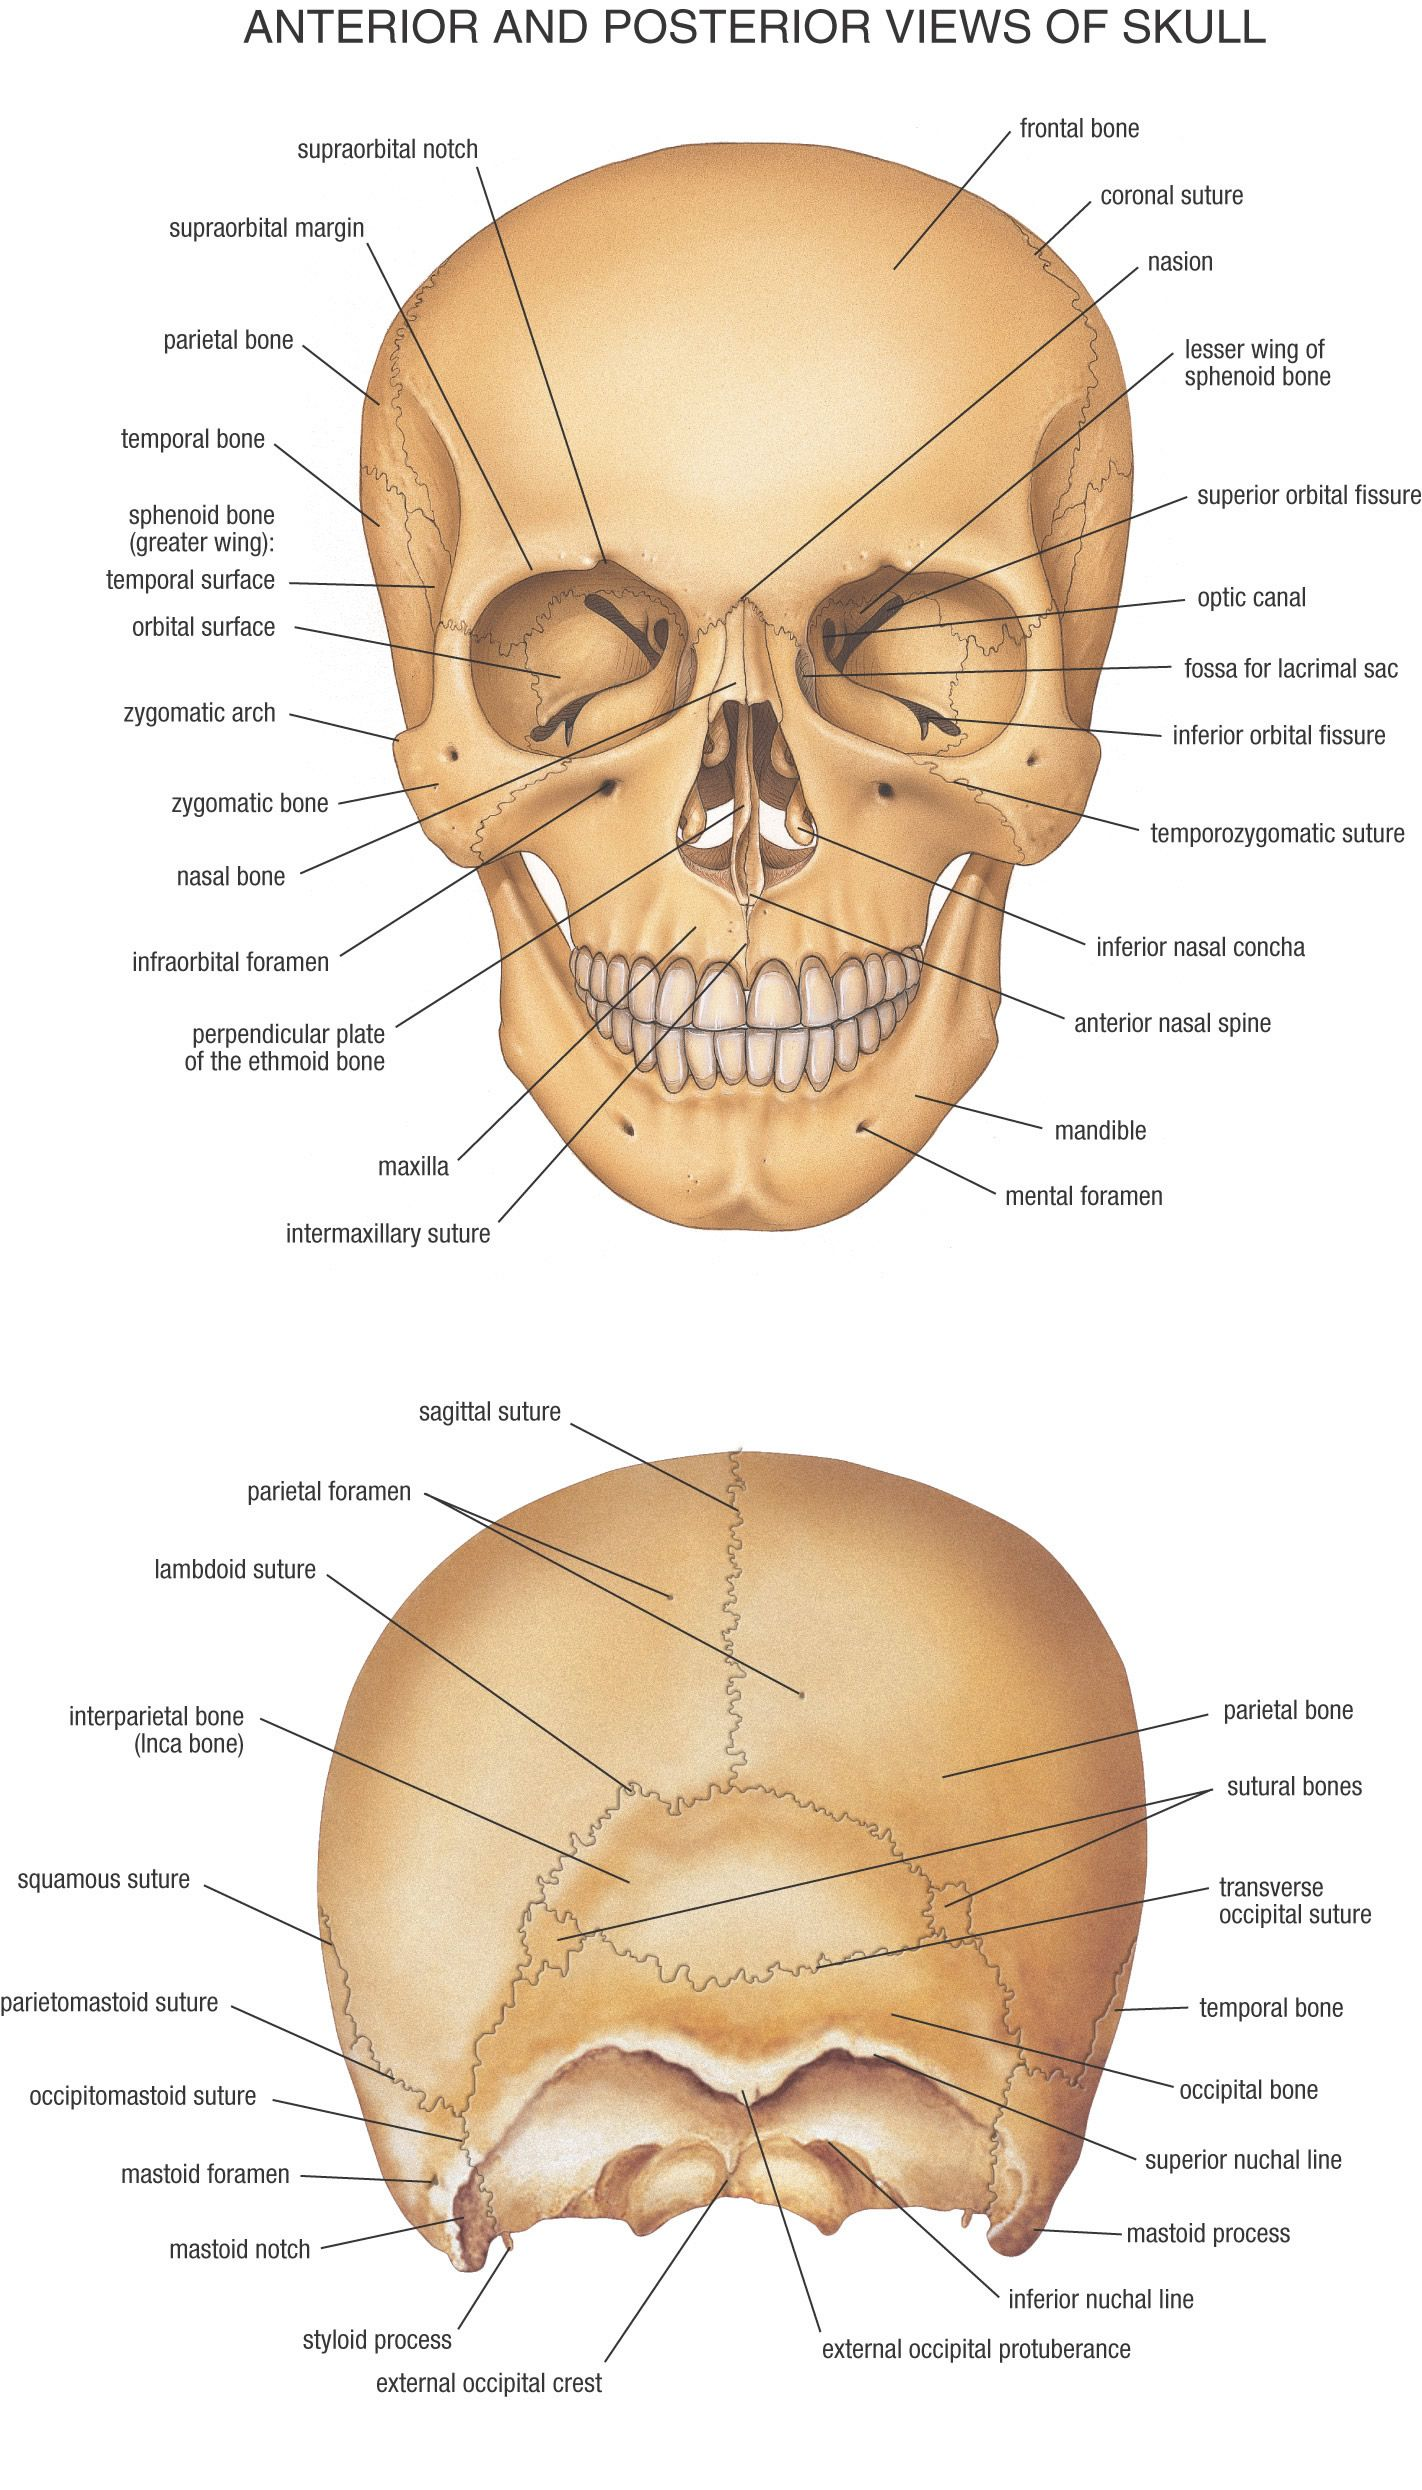 Hb Anatomy Skull Keep Useful Pinterest Anatomy Skull